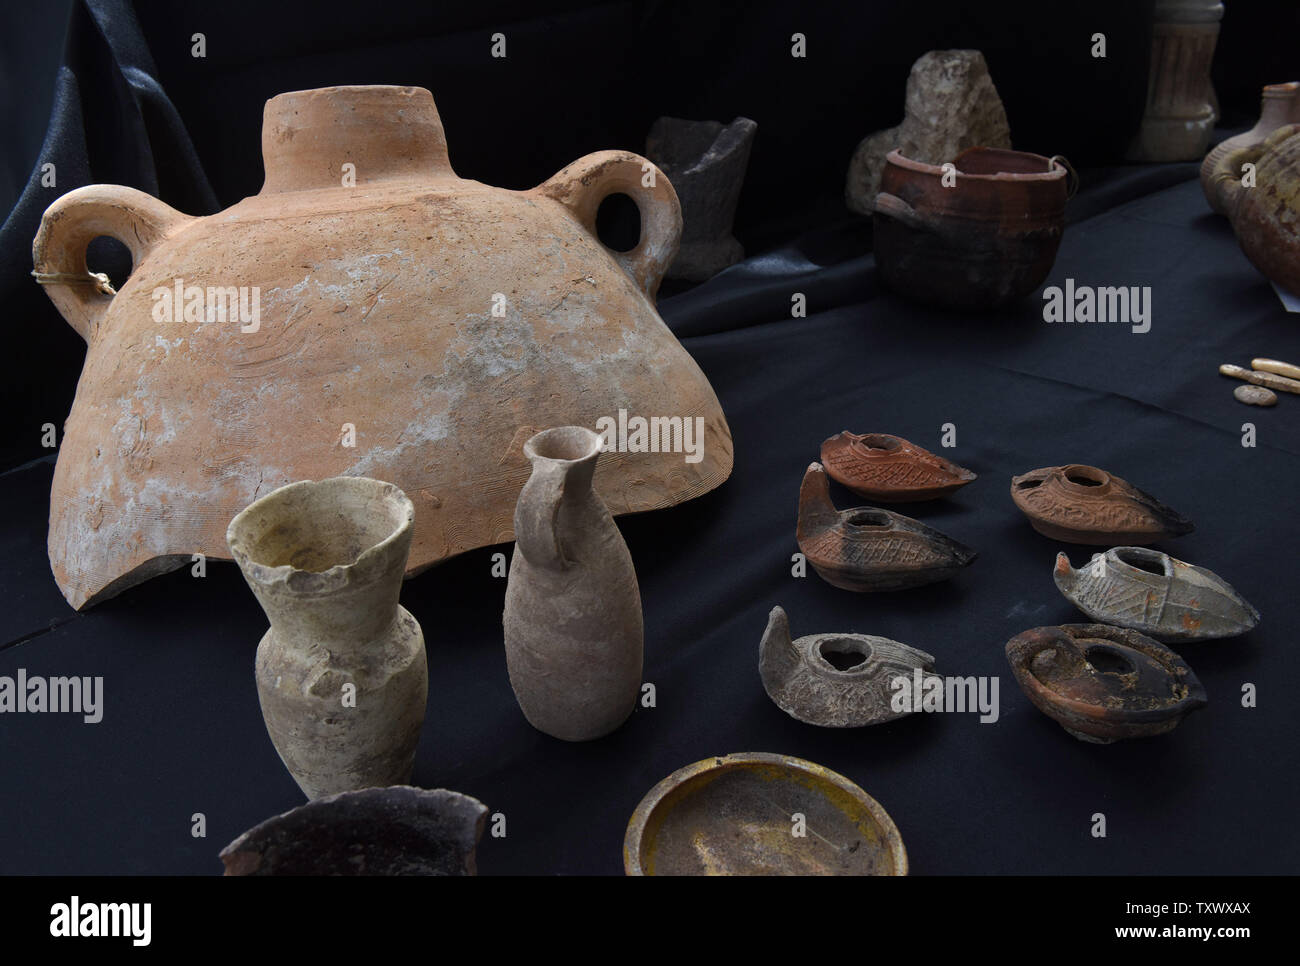 Antiquities that were discovered during excavations by the Israeli Antiquity Authority in Caesarea, are displayed during a press briefing in Caesarea, Israel, April 26, 2017. The Edmond de Rothschild Foundations is investing approximately $275,000 to expose and restore Caesarea's hidden treasures.  Photo by Debbie Hill/UPI - Stock Image